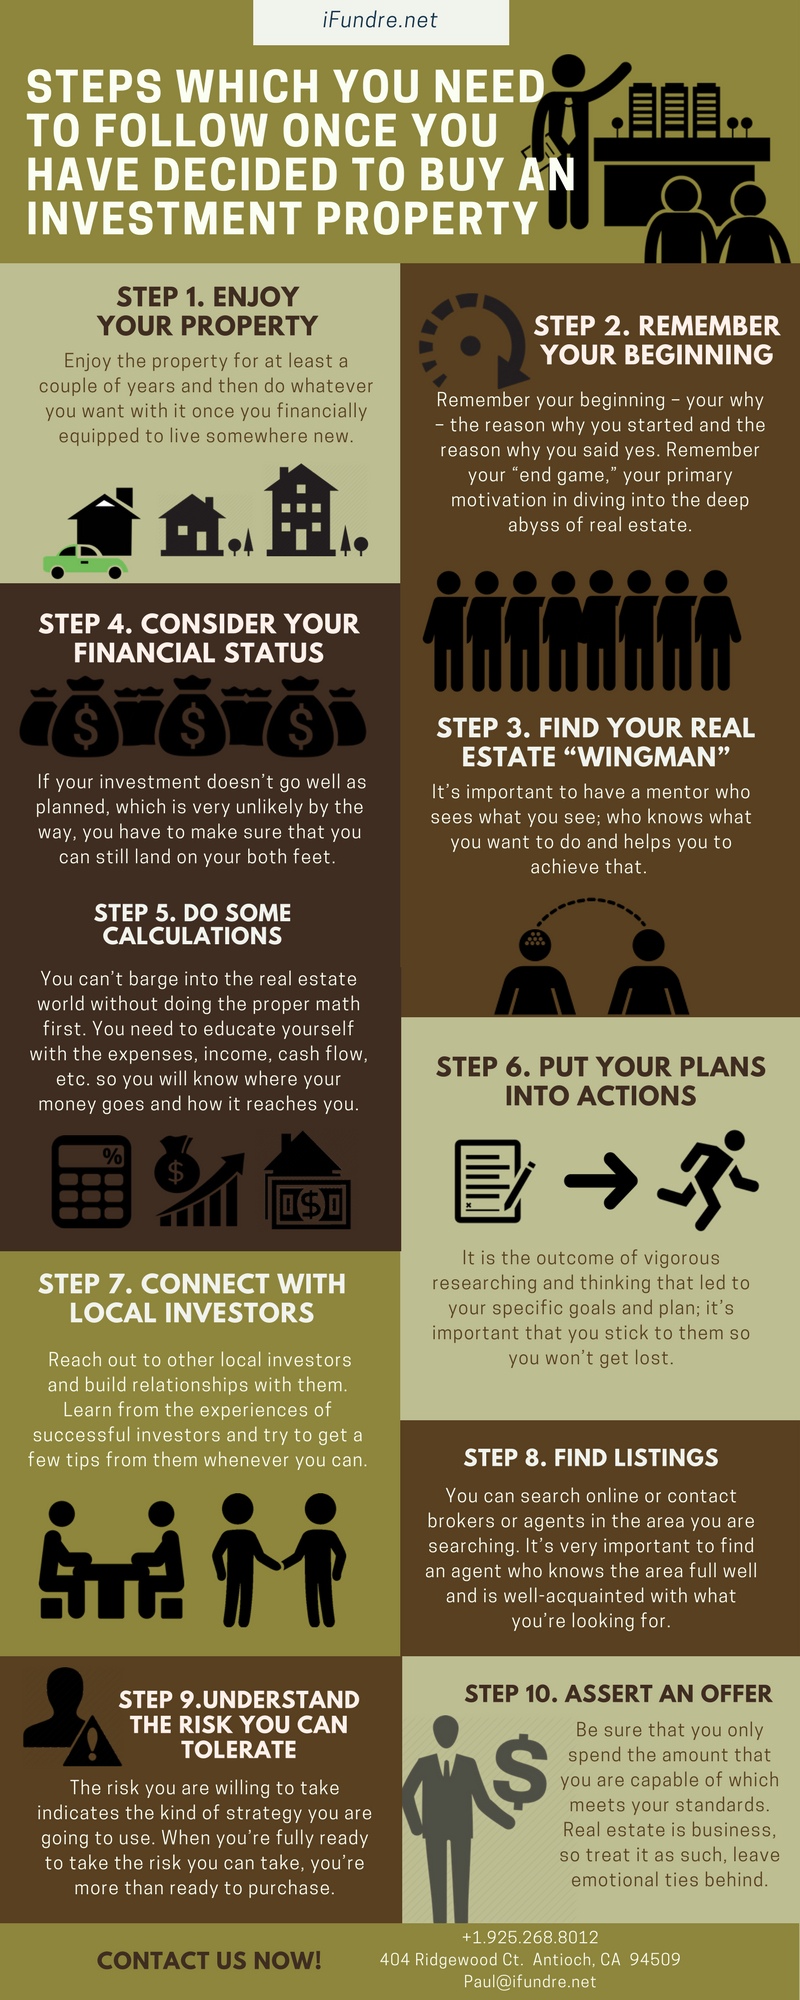 Buy Investment Property: Top 10 Steps To Follow